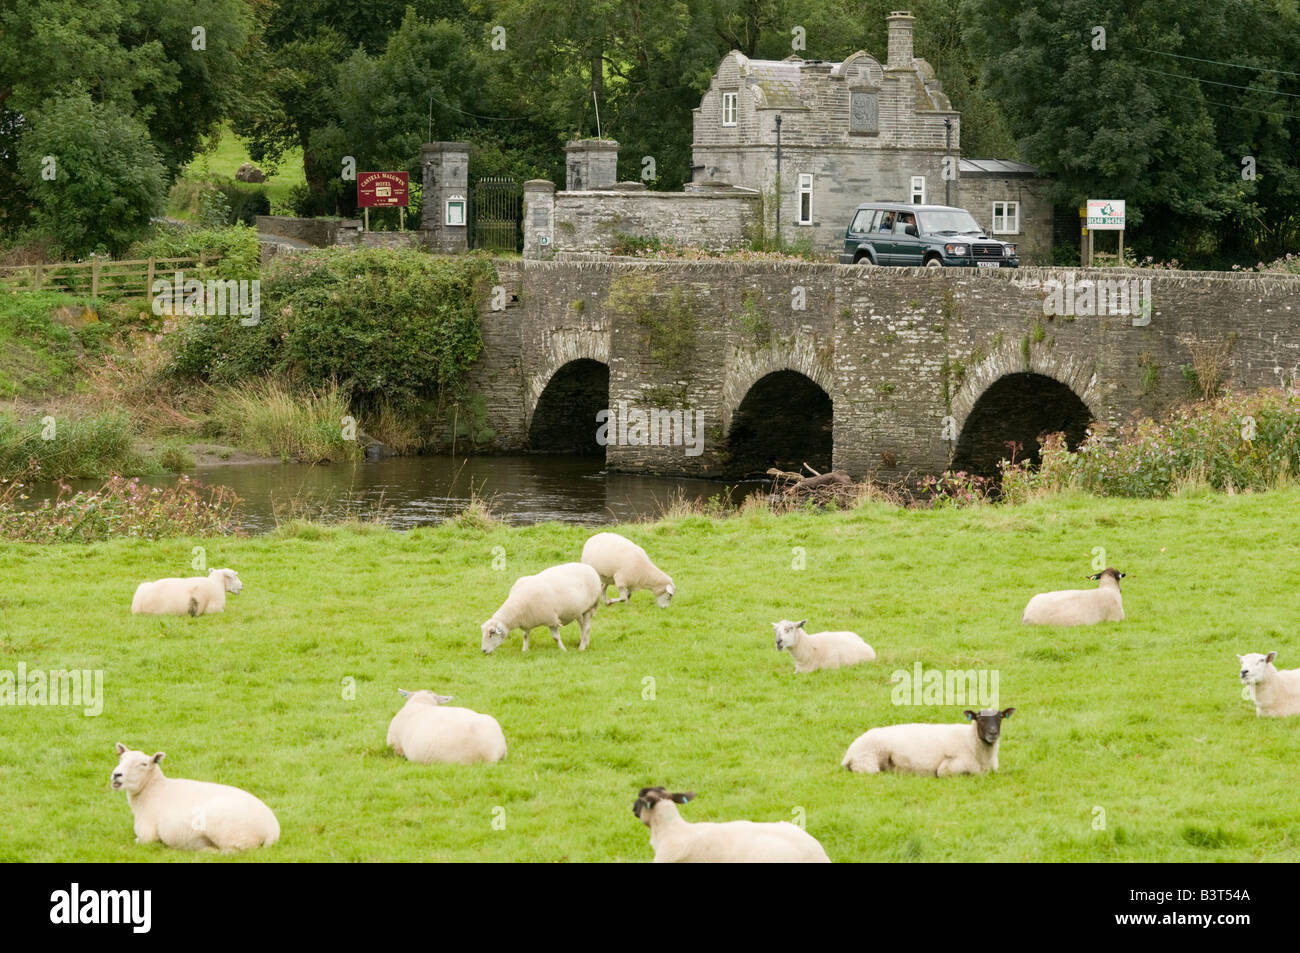 The old stone bridge over the river Teifi at Llechryd Ceredigion Wales uK, with sheep grazing in the field in front Stock Photo